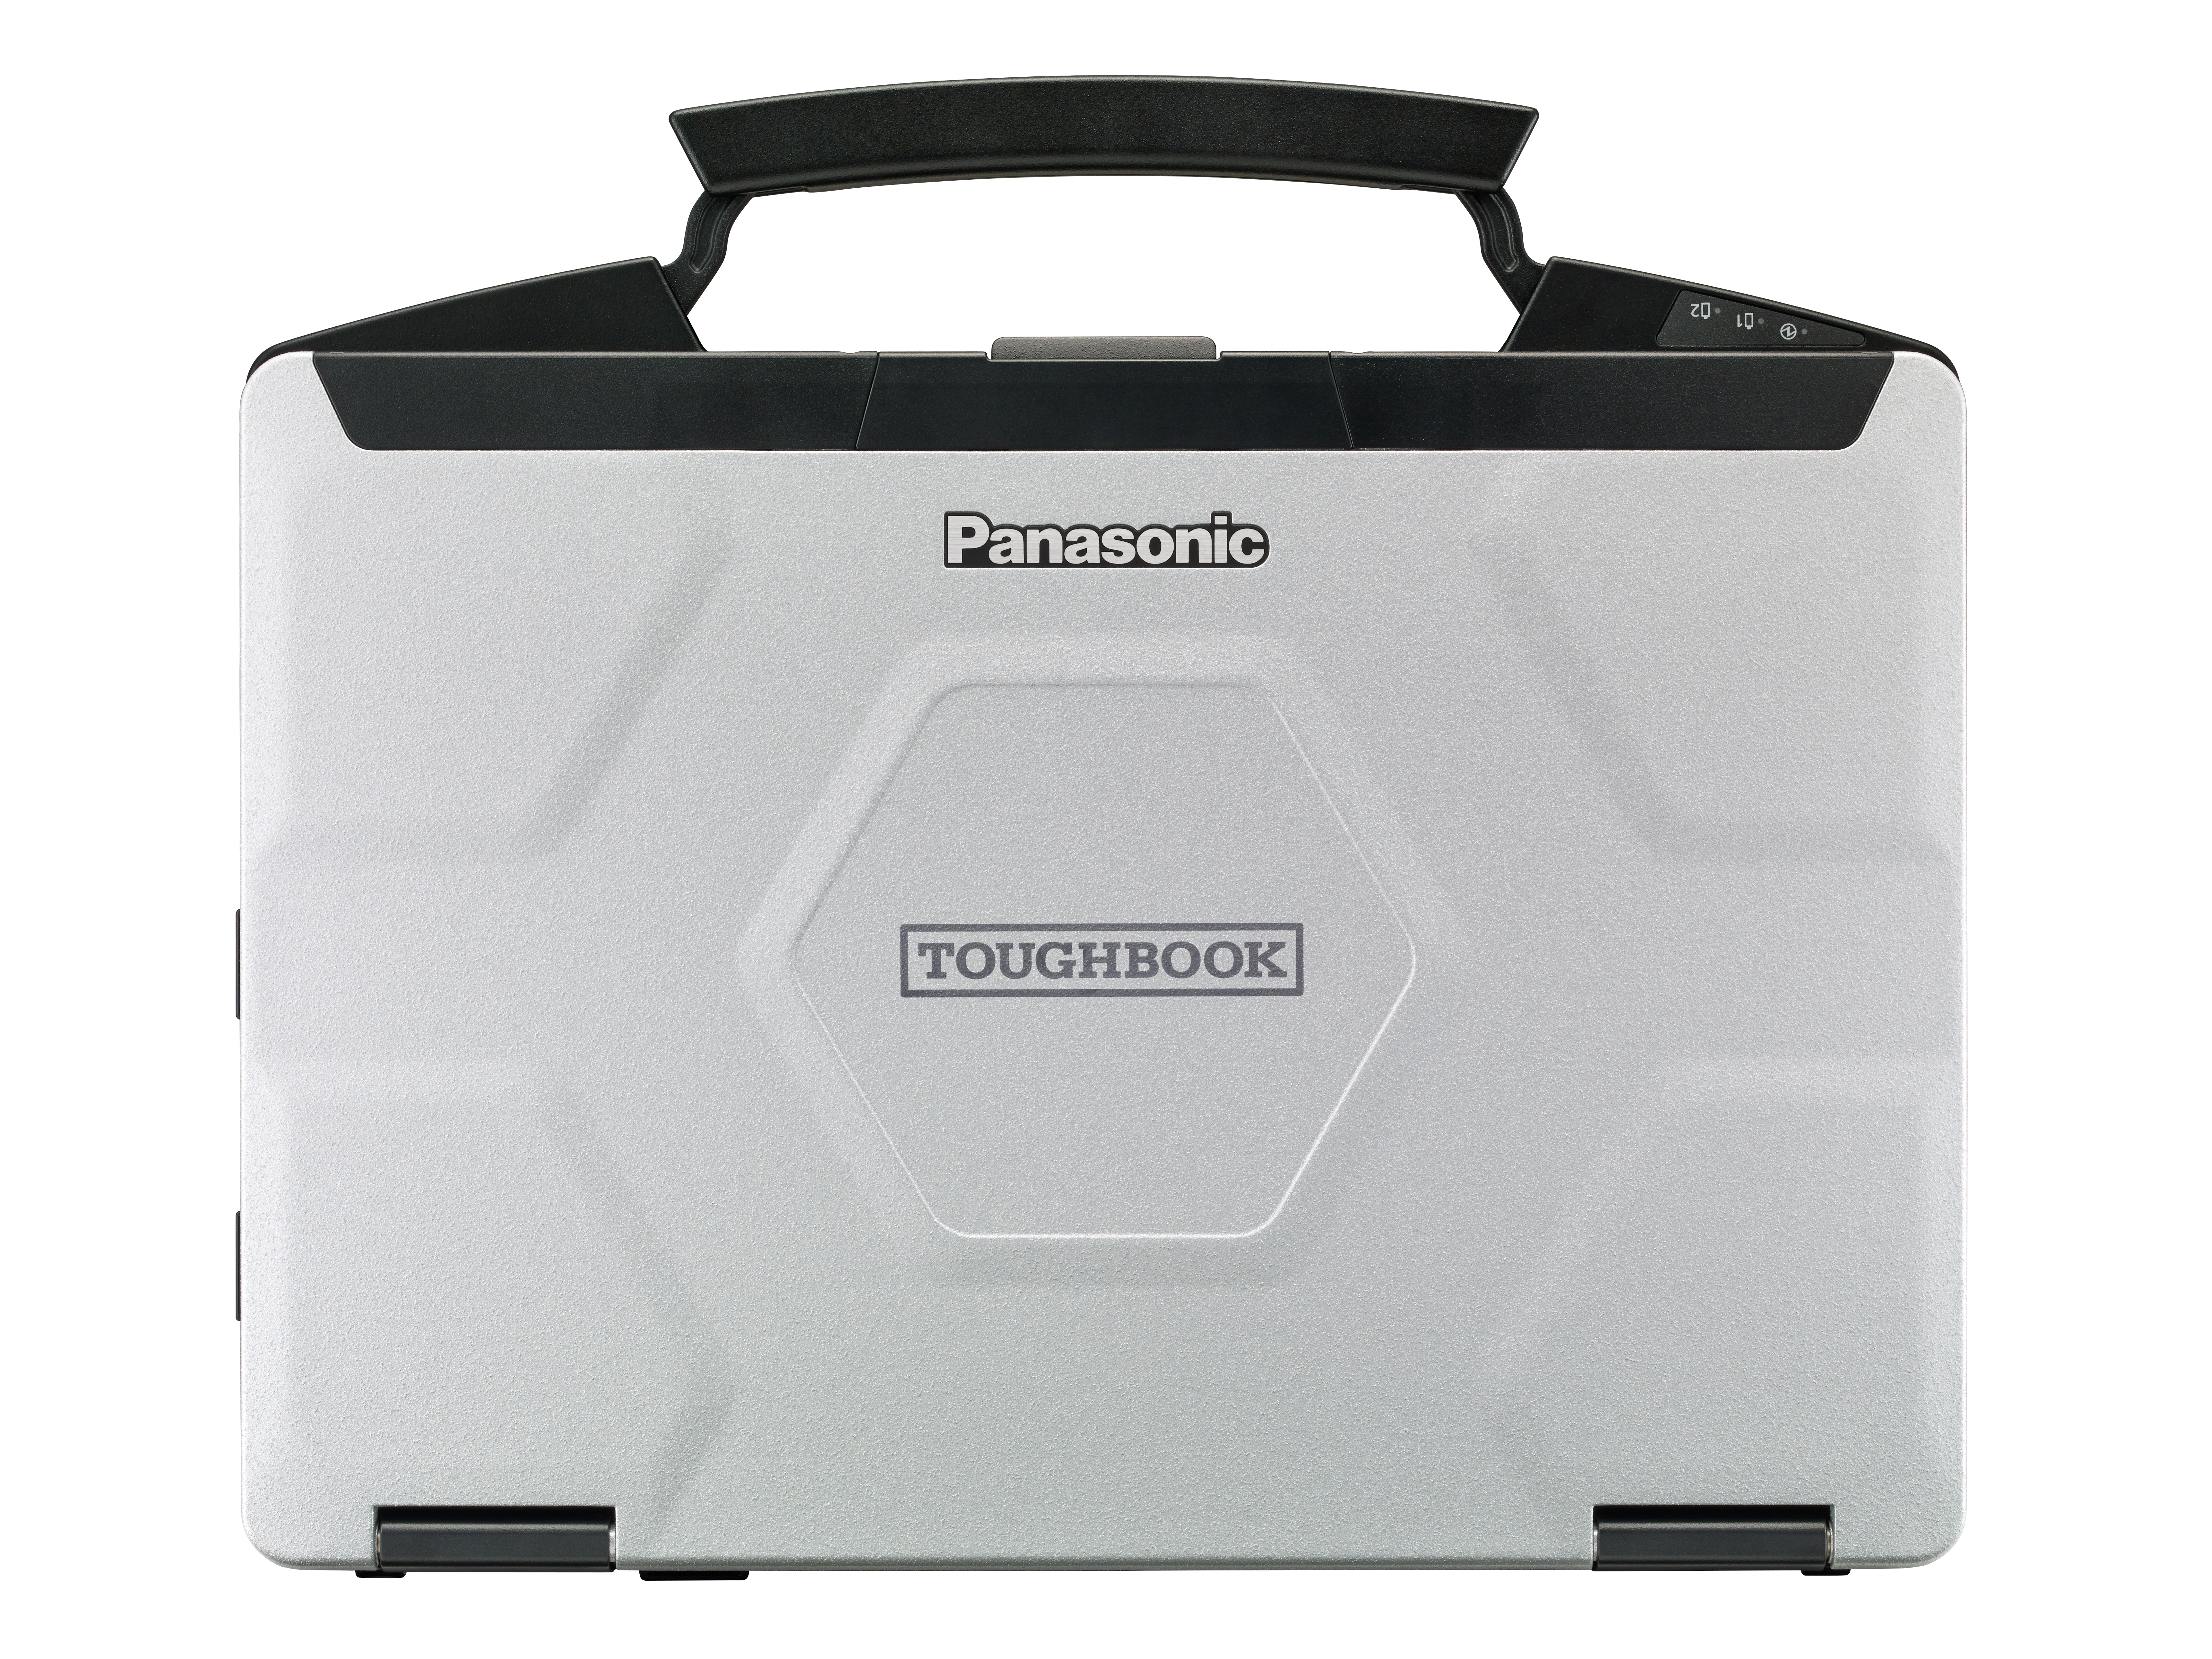 Panasonic Toughbook 54 Prime Mobility Solutions 20110220070305basicpanasoniccarstereowiringjpg Top Handle Up Other